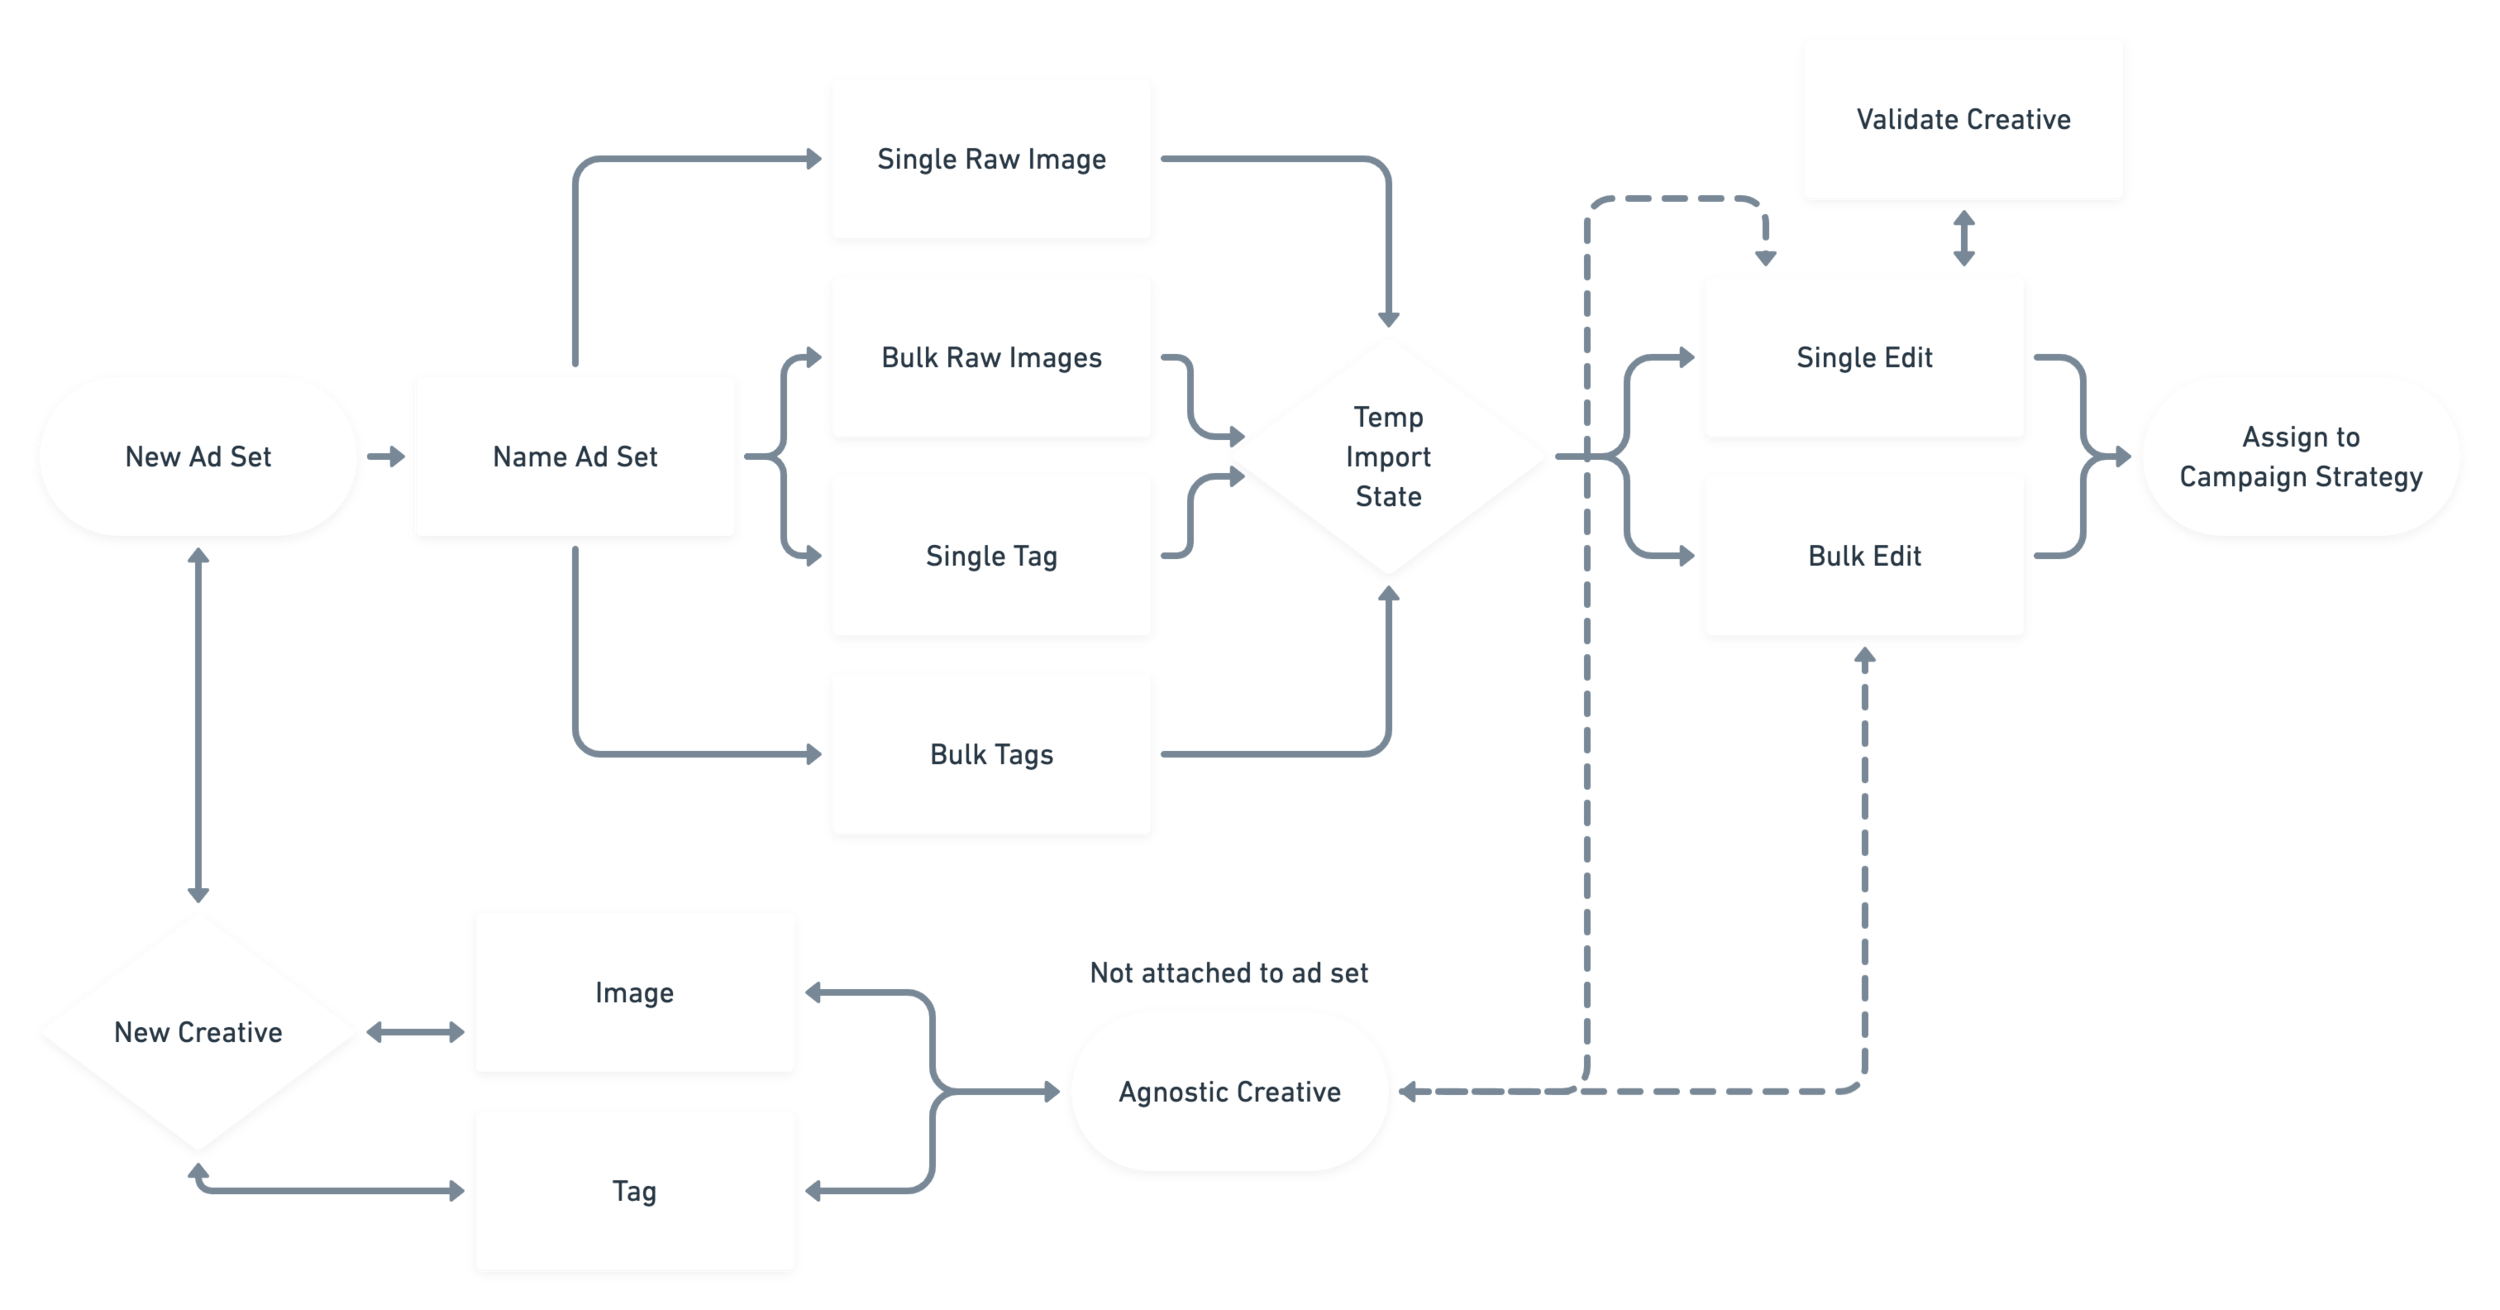 Magnetic Force Design Sprint Journey Map@2x (1).png